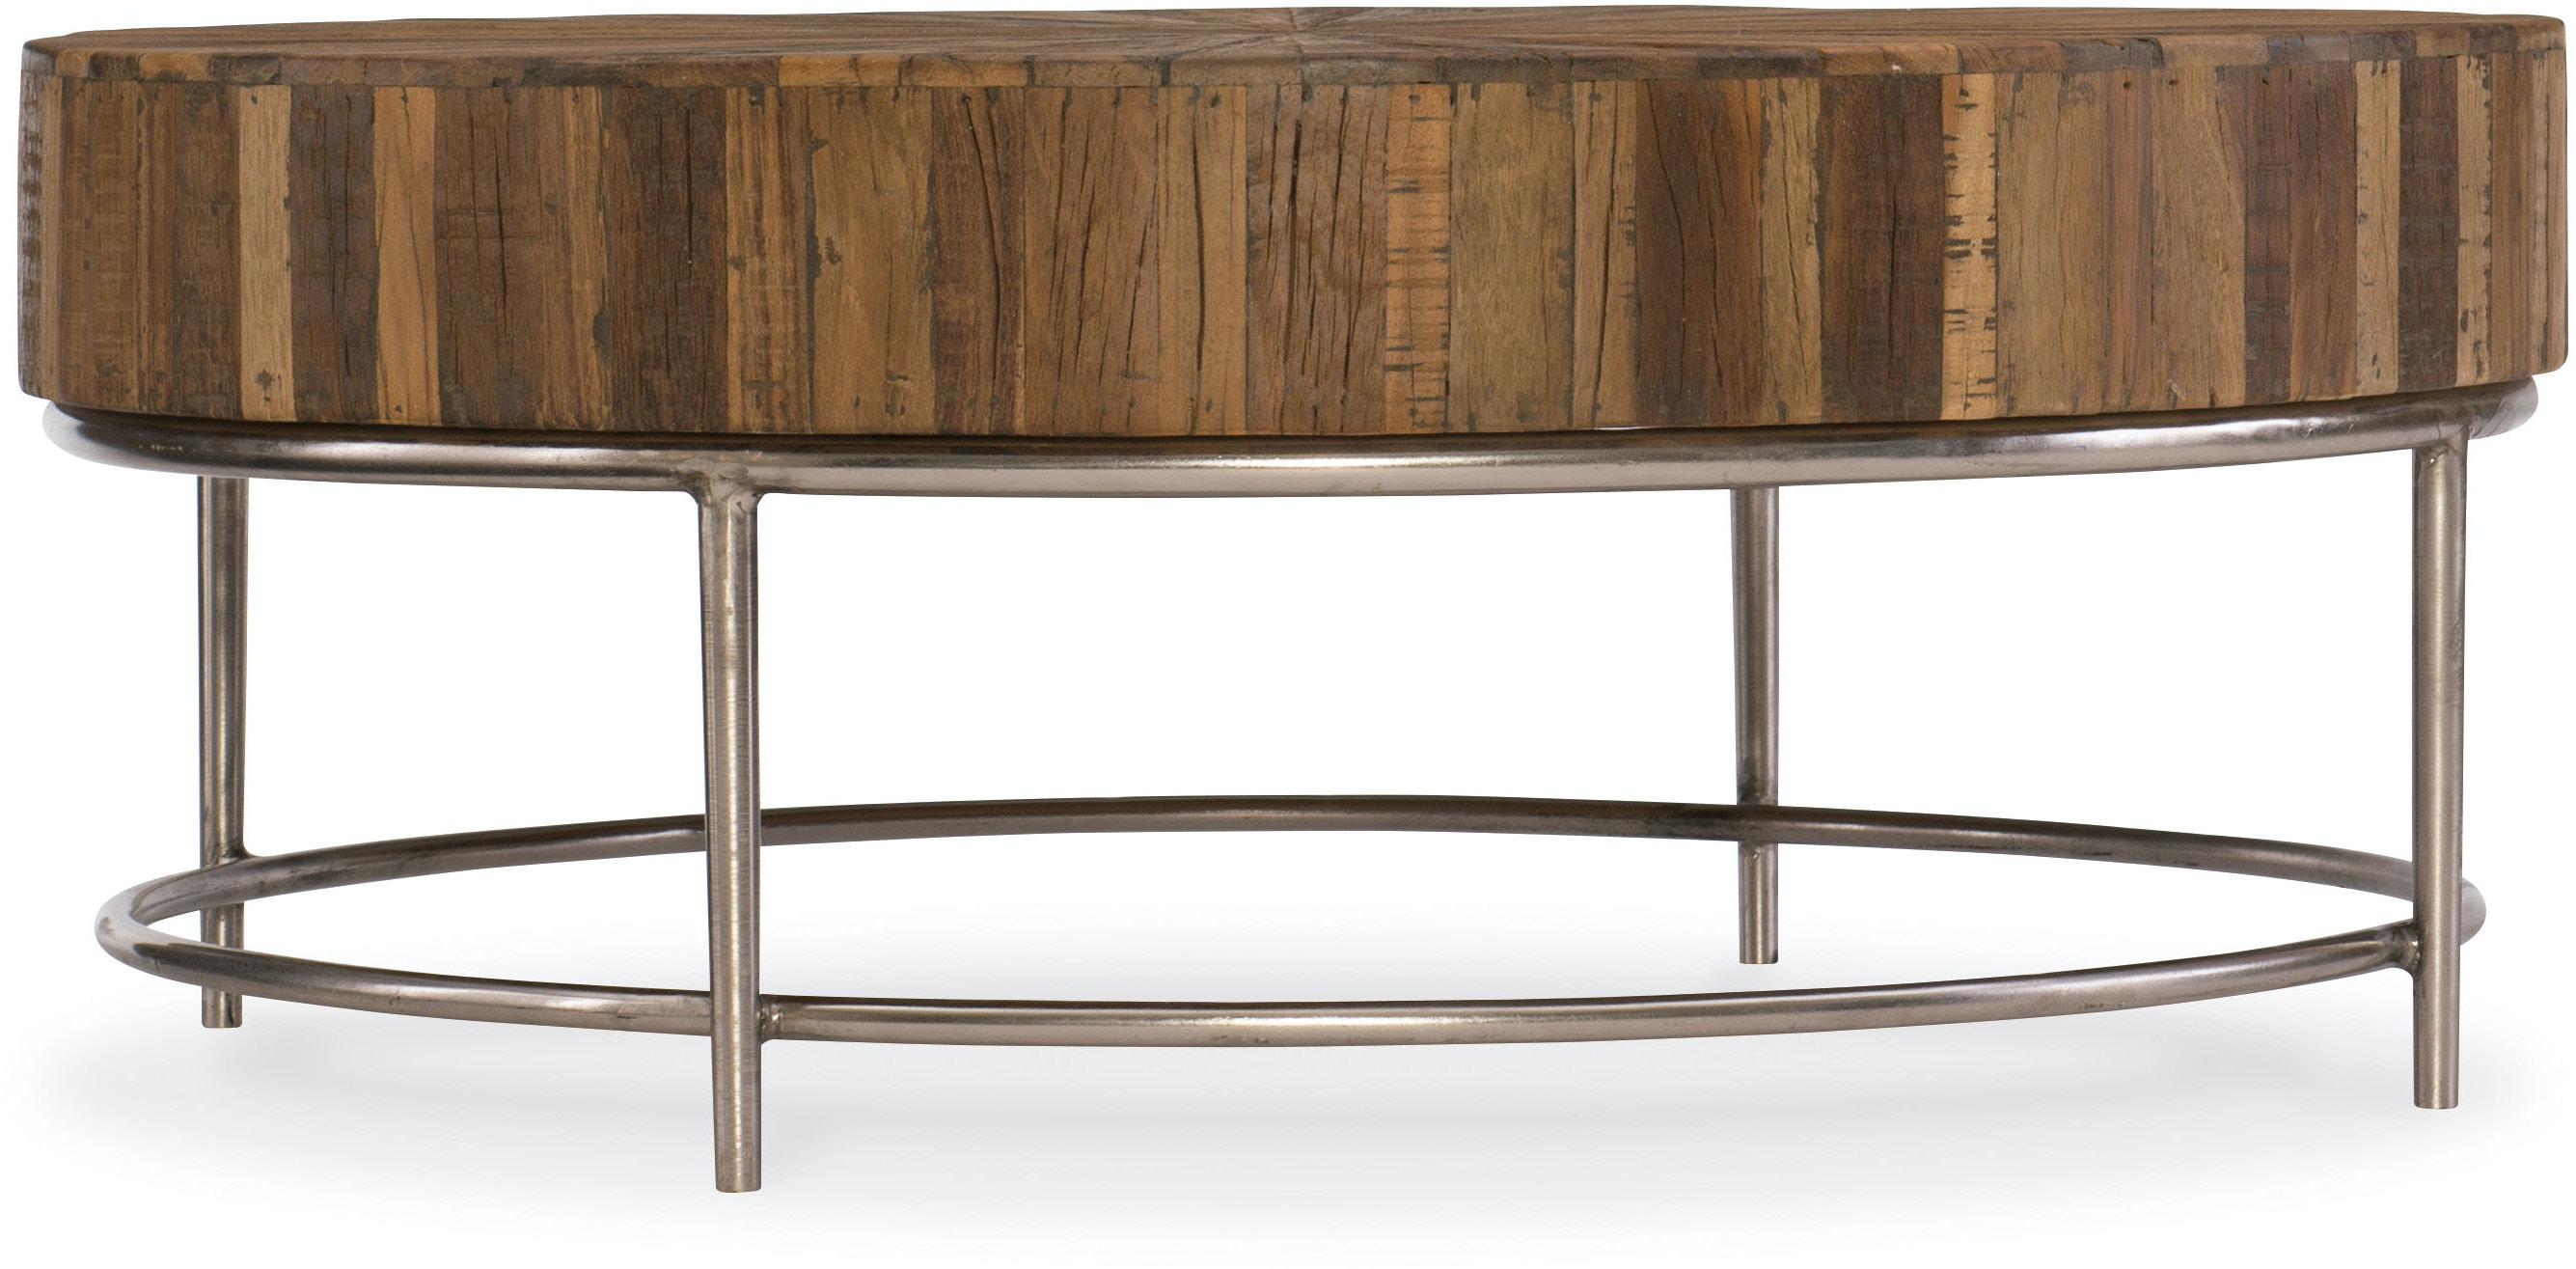 Hooker Furniture Living Room L Usine Cocktail Table 5950 MWD